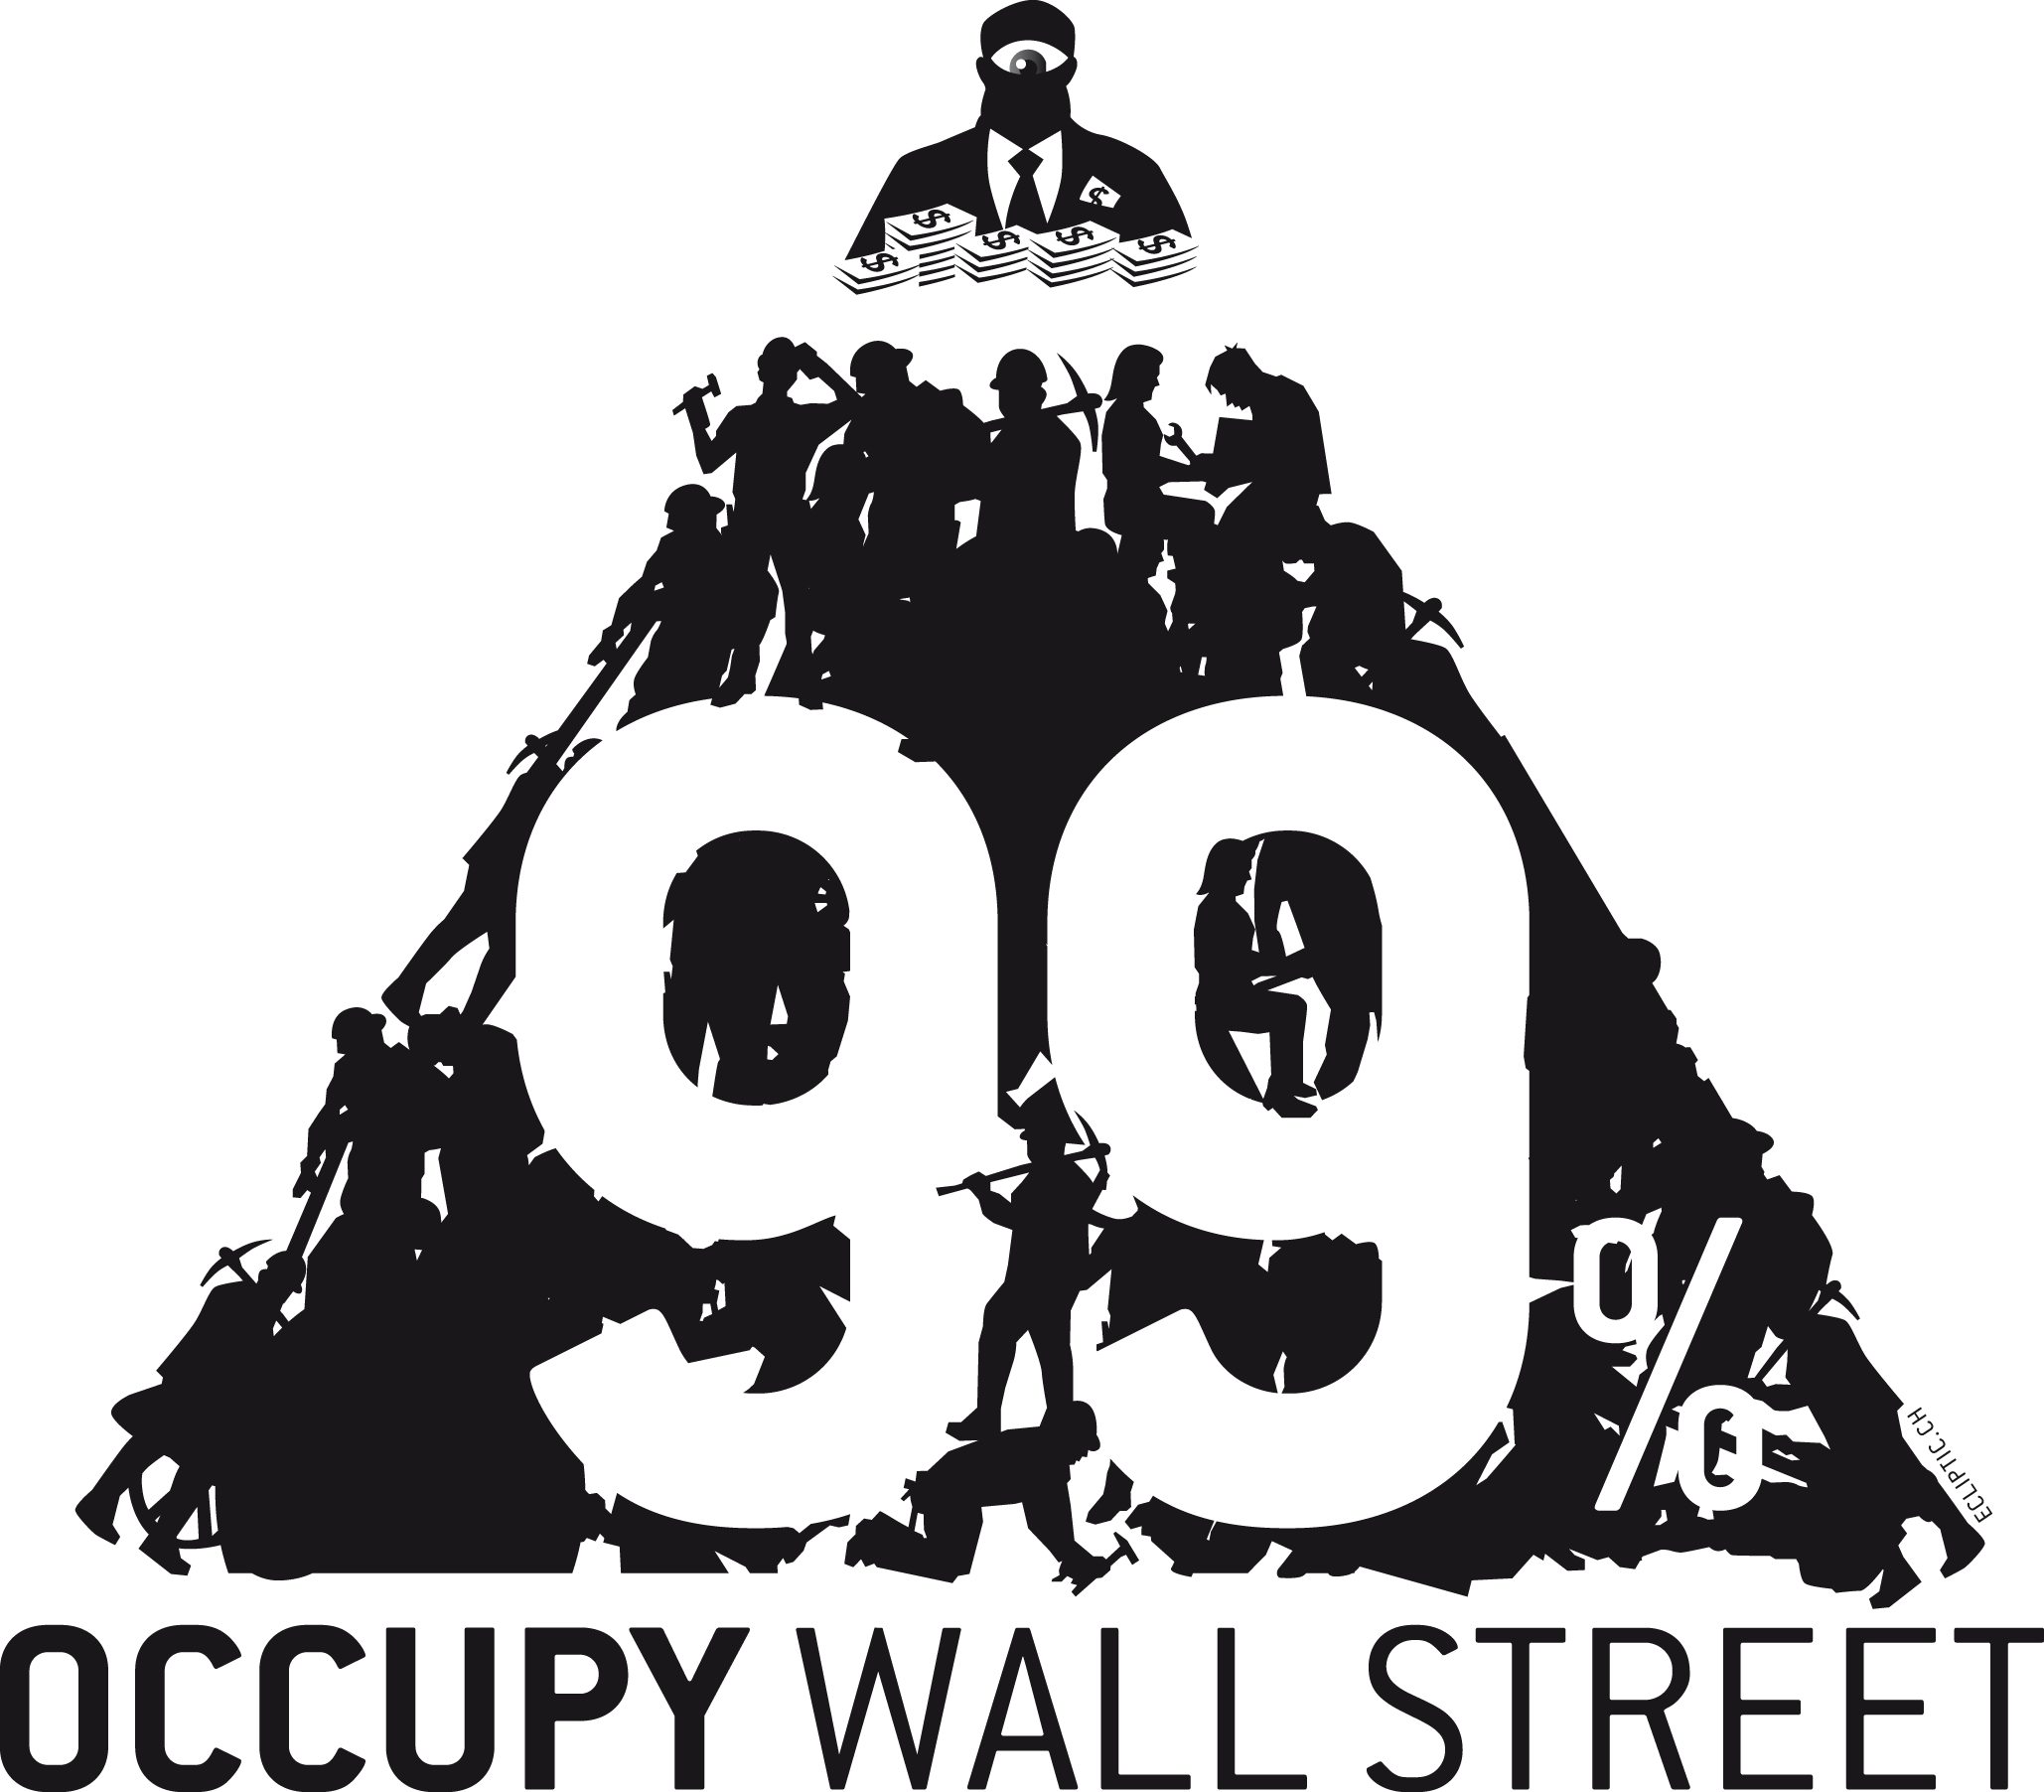 99-occupy-logo.png